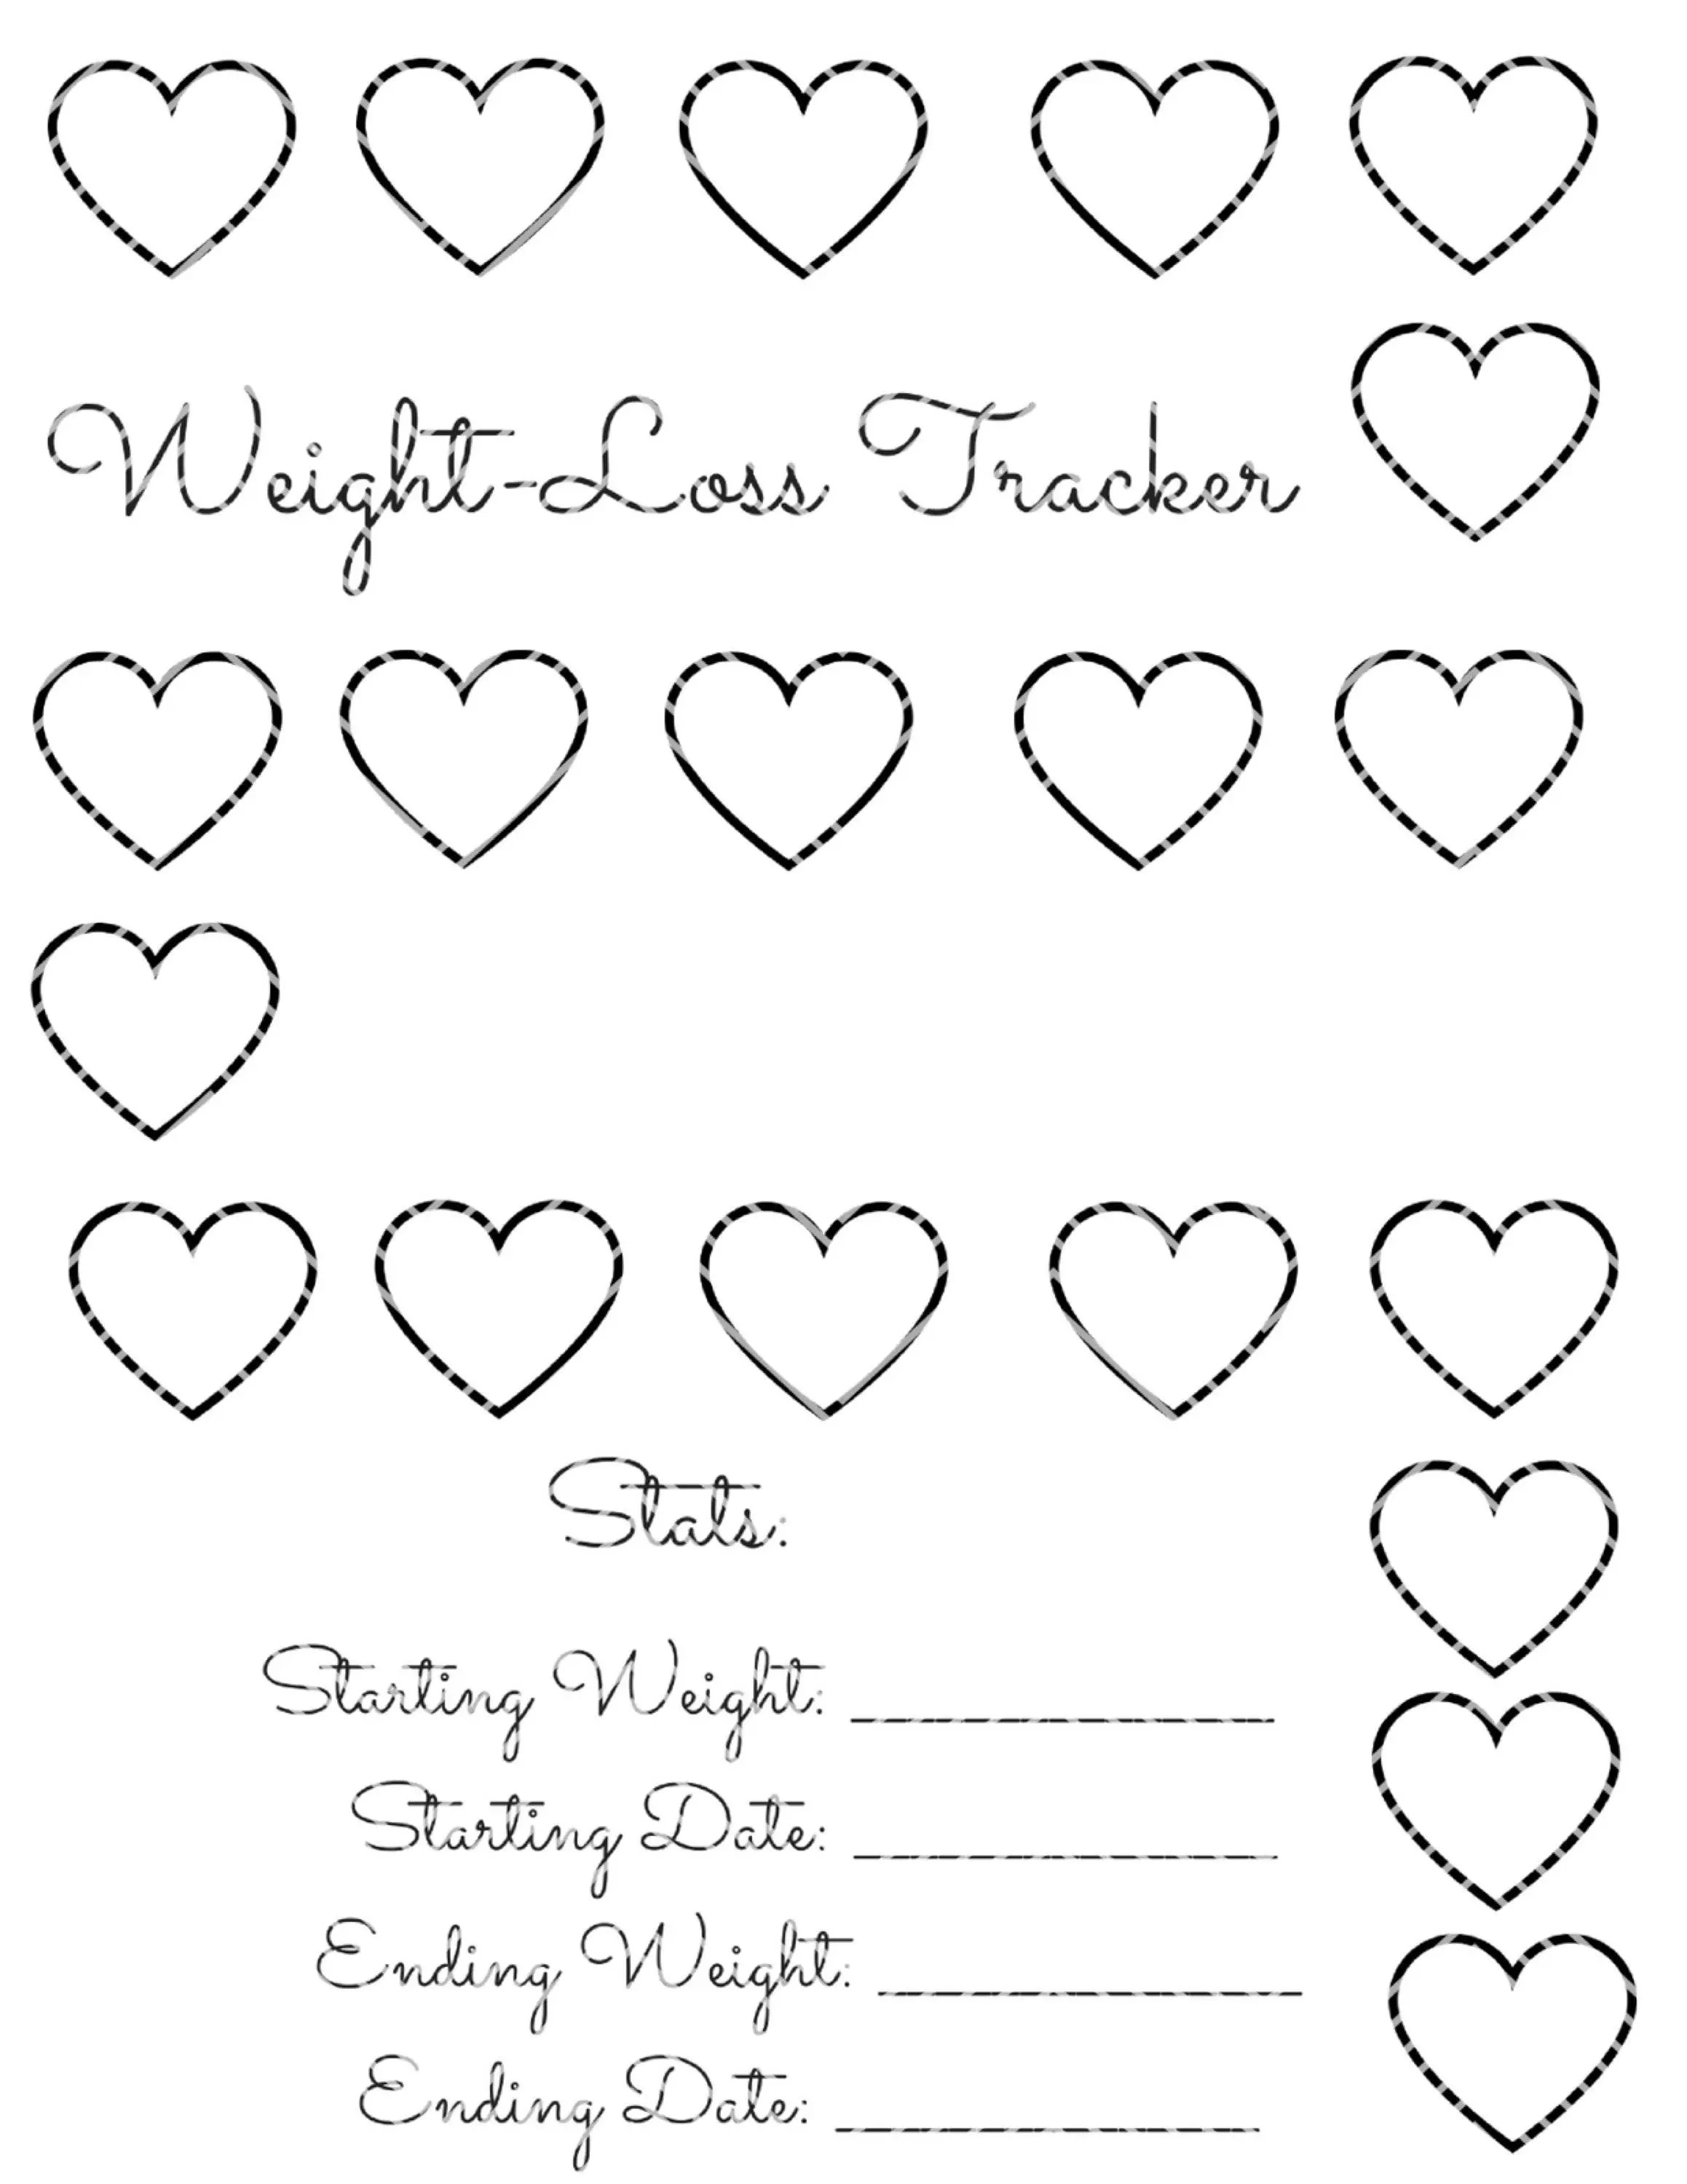 20 Pound Weight Loss Tracker Heart Instant Download